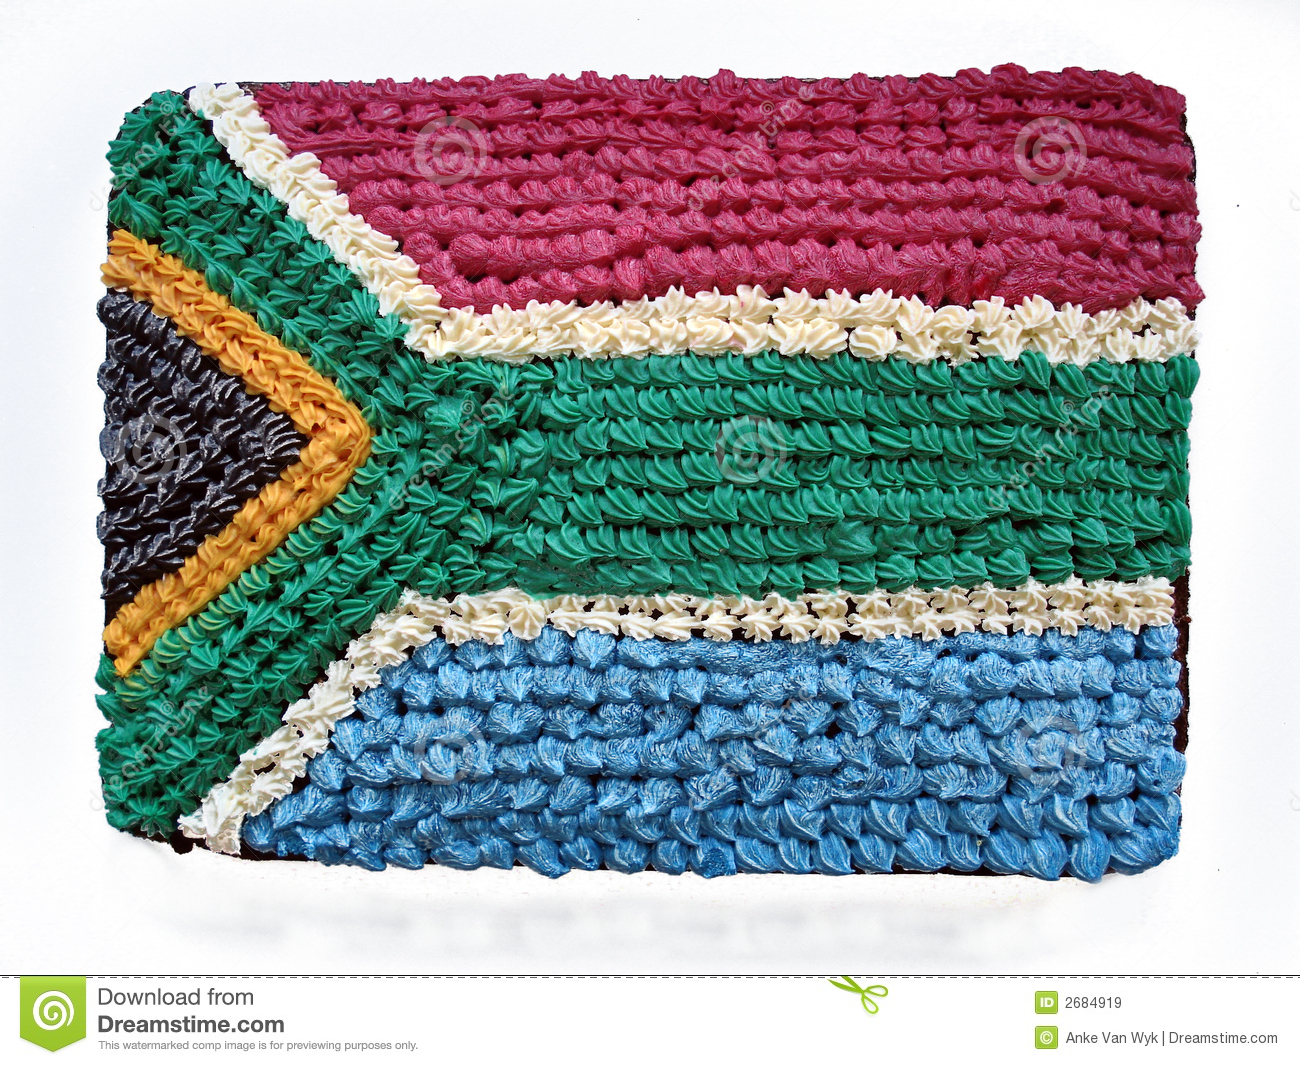 South African flag cake